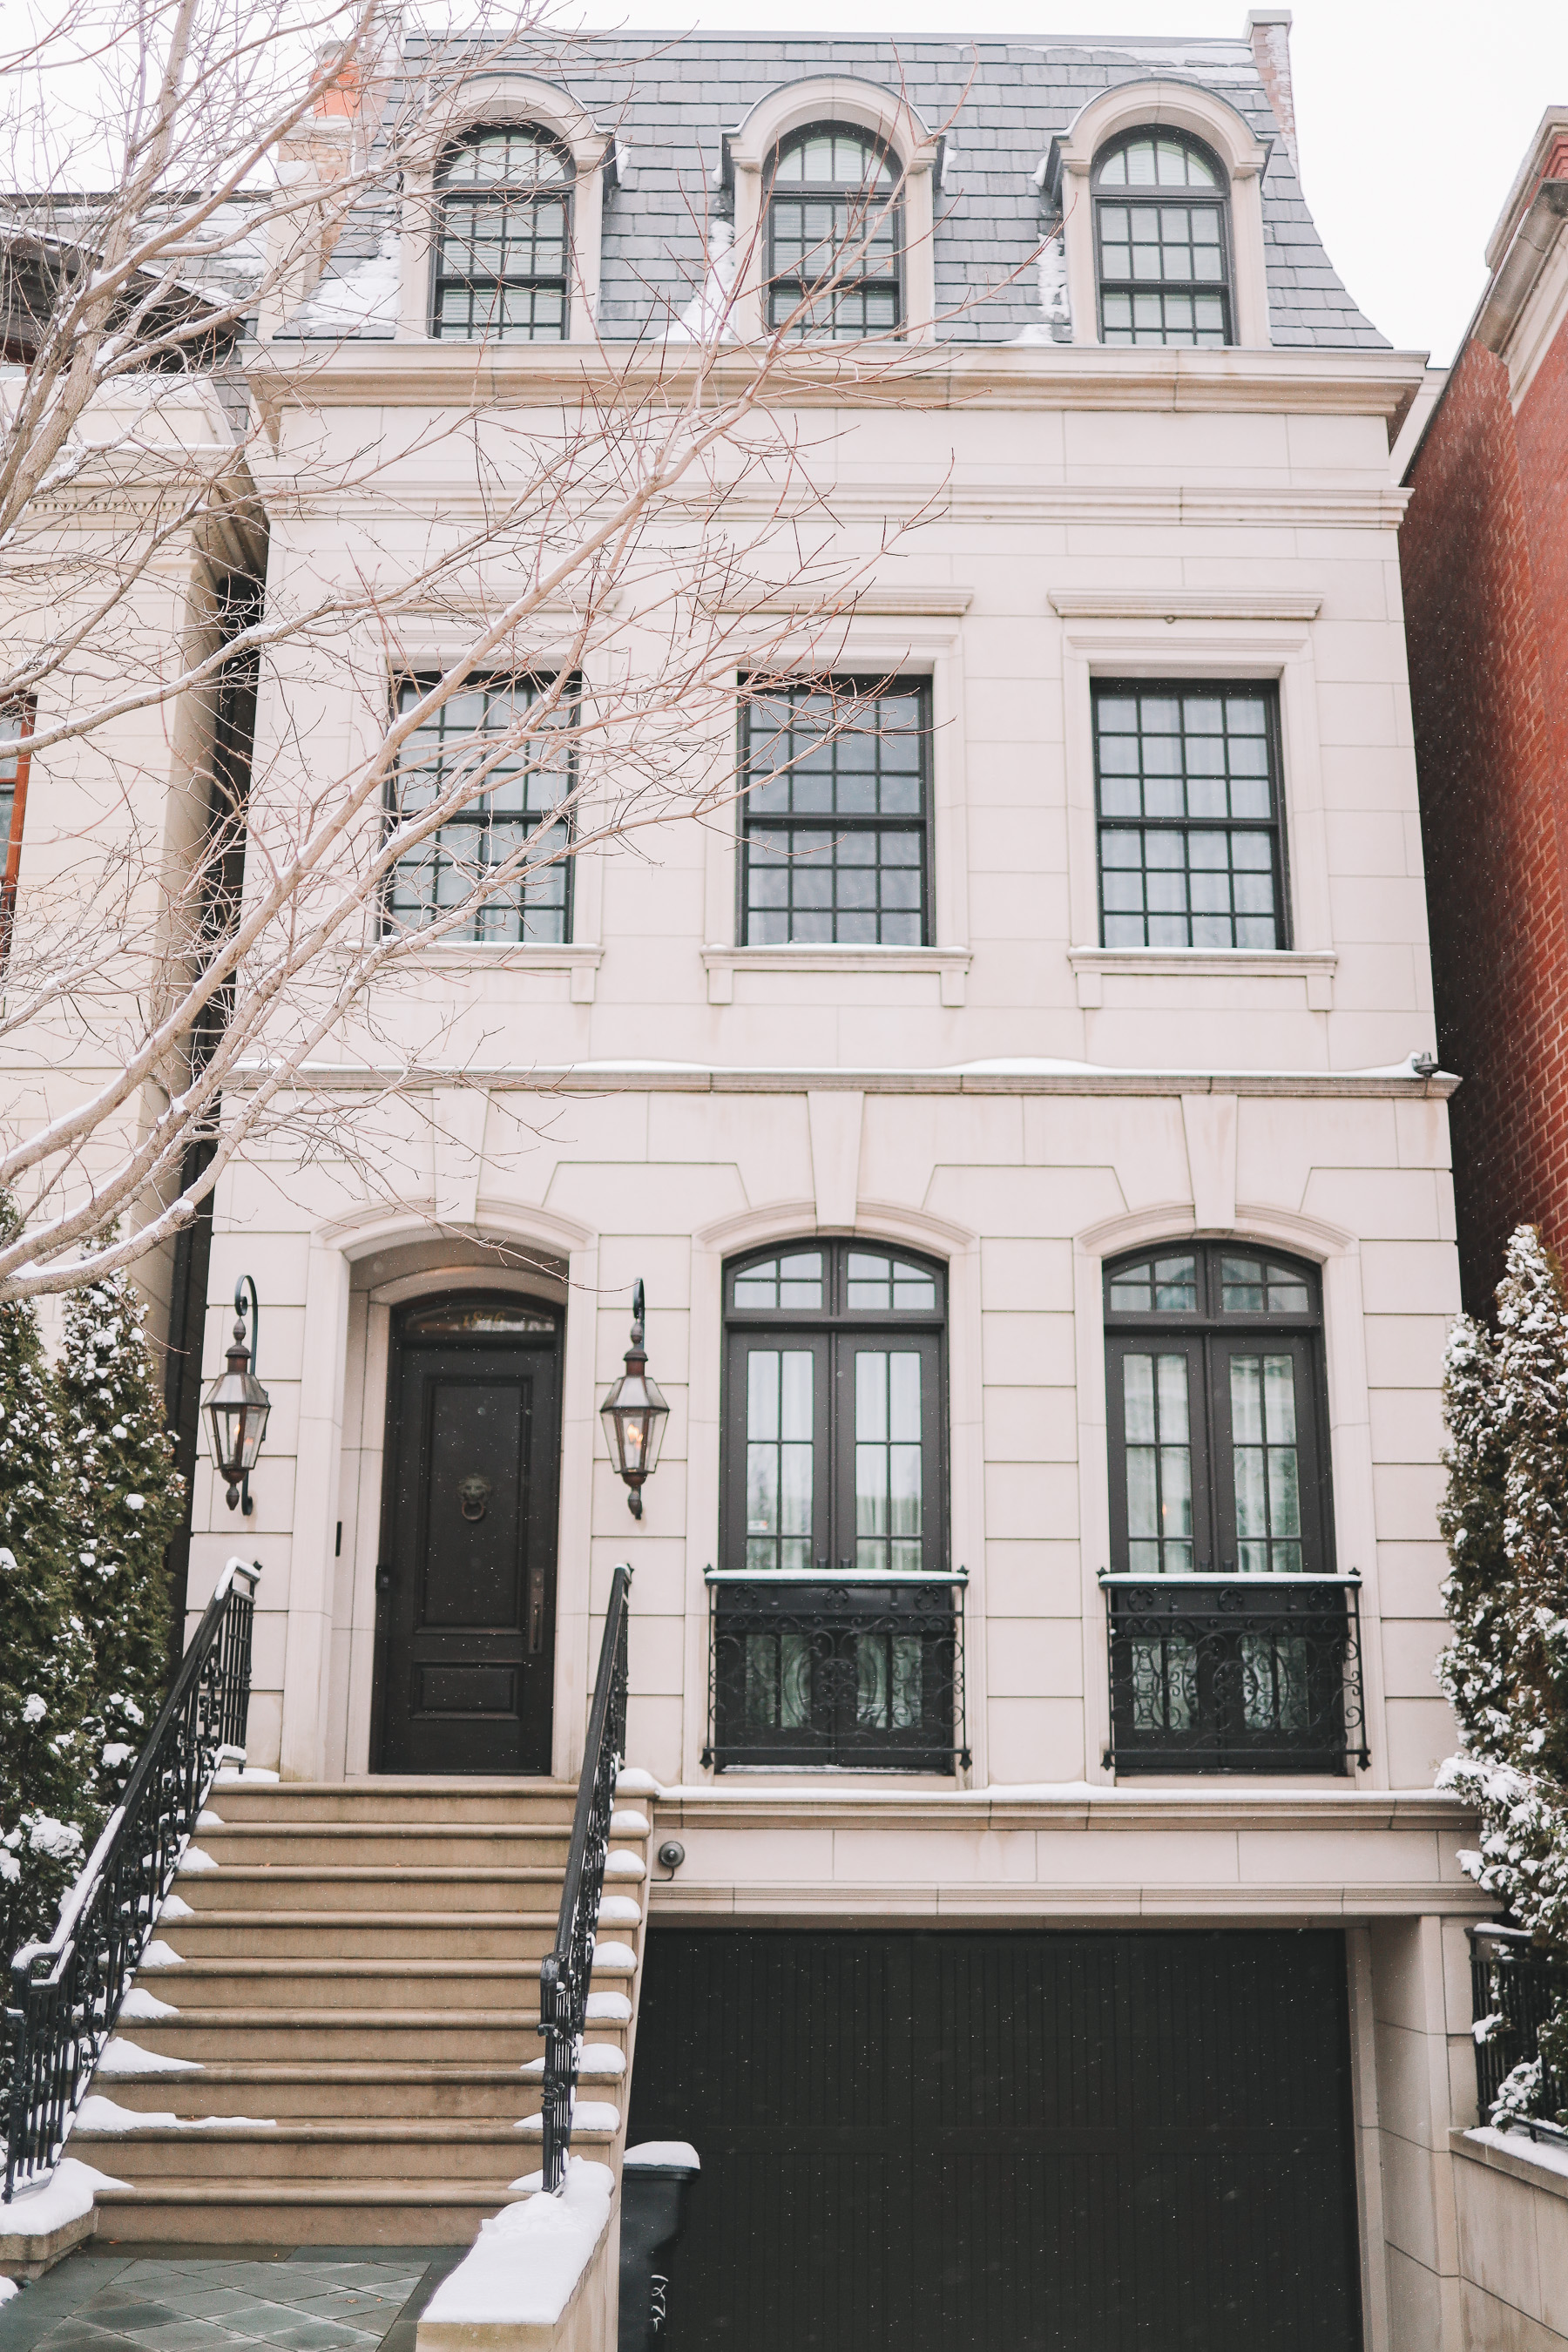 chicago houses winter | Happiness Walk Through Lincoln Park